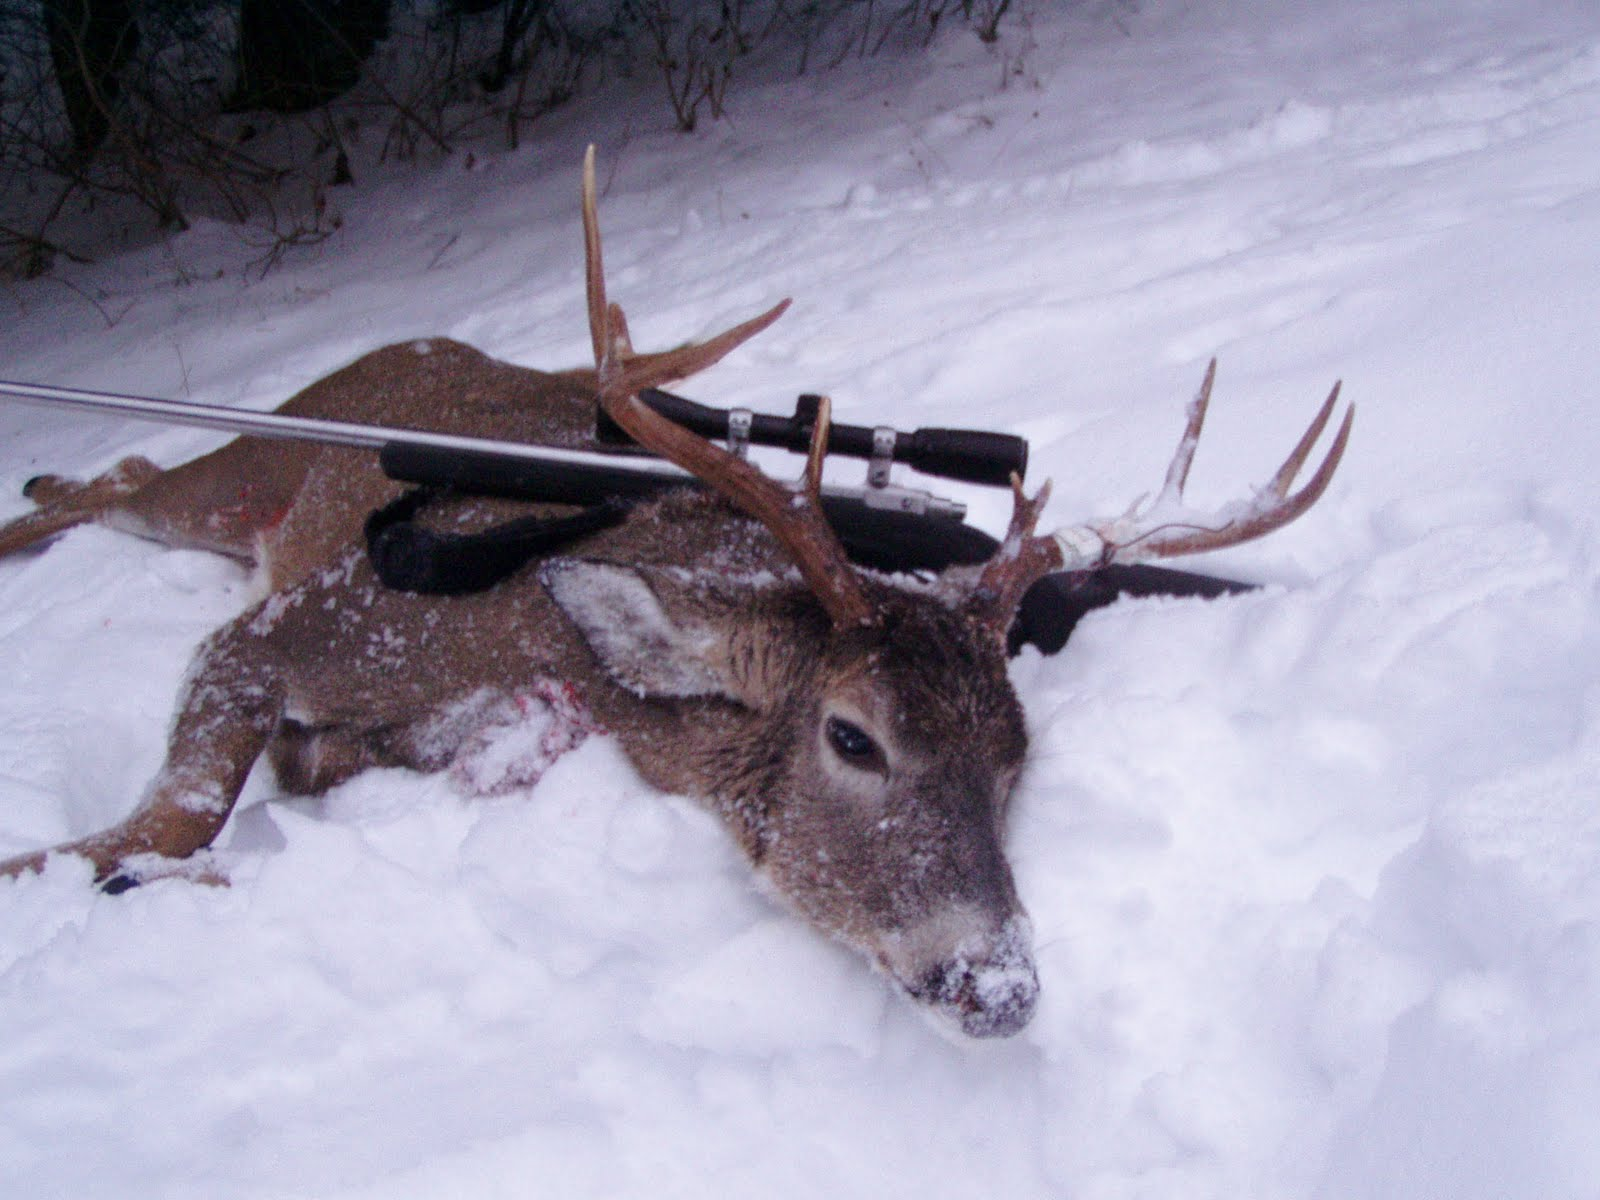 The backwoods views journal the do it yourself european mount if youve had a successful year of hunting elk or deer then here is one handsome option to consider if you want a tedious but very rewarding do it yourself solutioingenieria Image collections